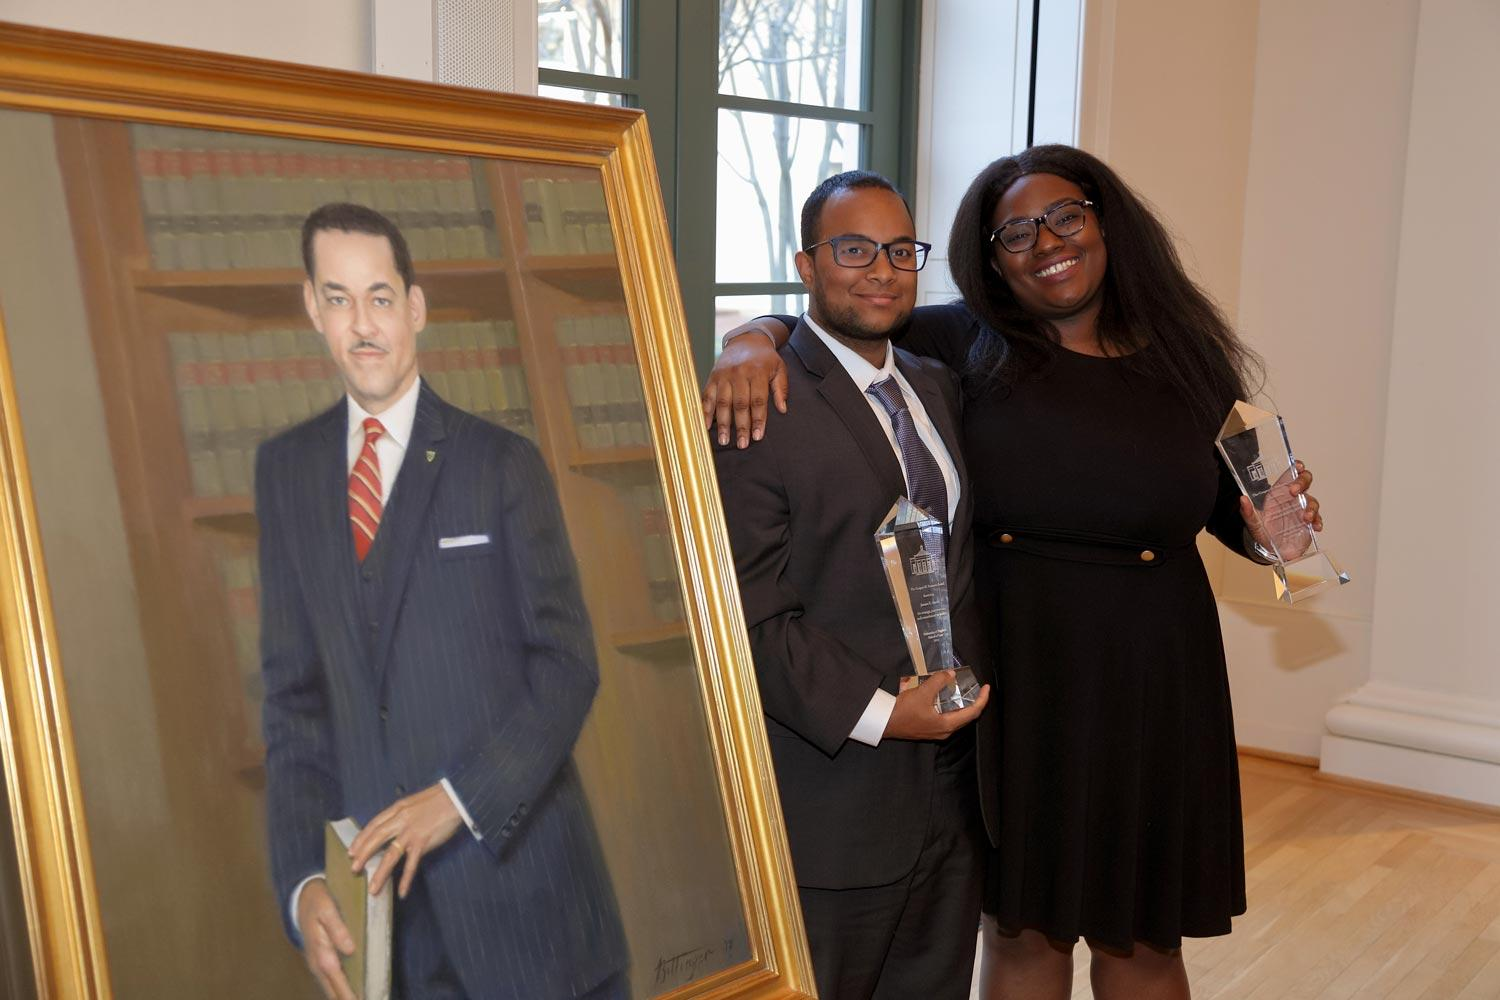 The inaugural Gregory H. Swanson Award was presented to second-year law students Jamaica Akande and Toccara Nelson. The award winners are pictured here with a portrait of Swanson, the first African-American admitted to UVA. (Photos by Tom Cogill)